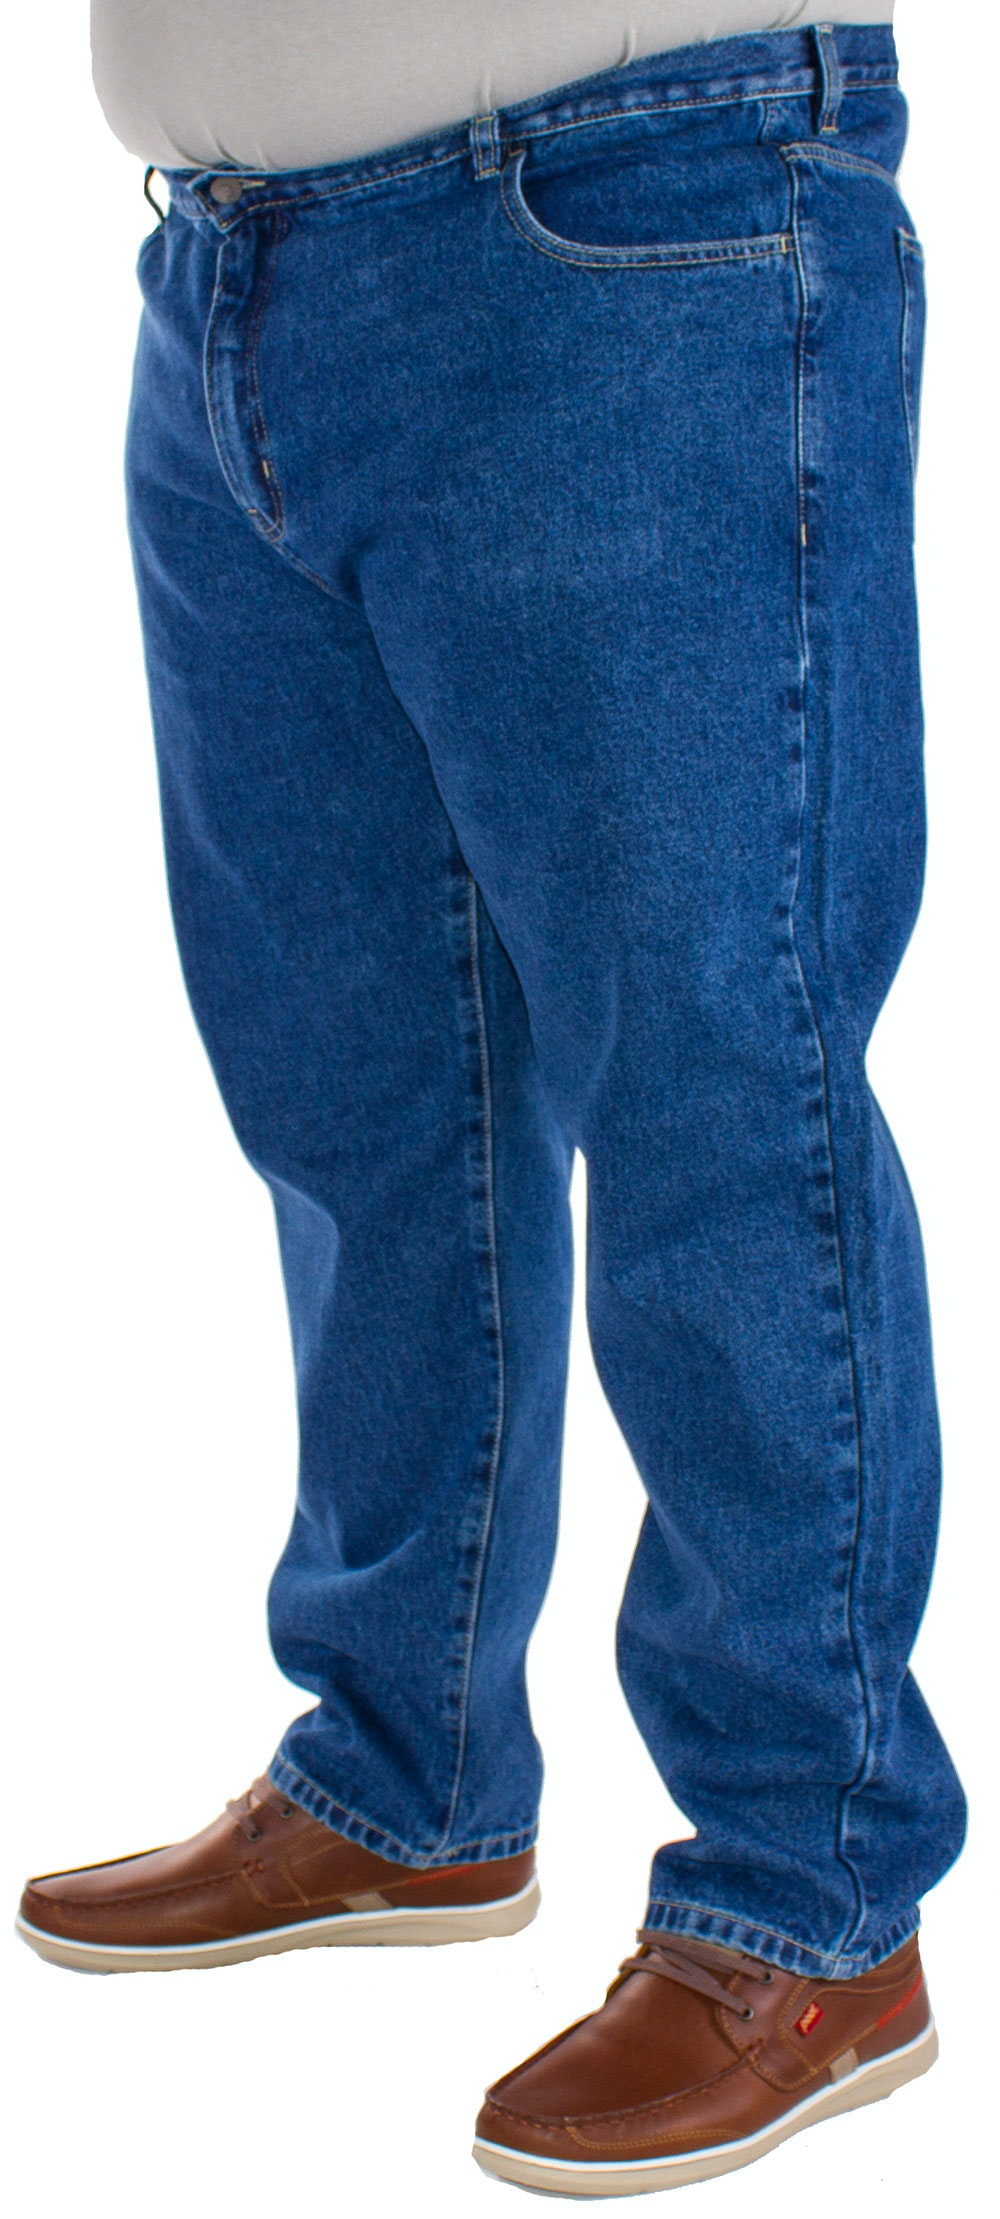 Carabou Denim Worker Jeans Tall